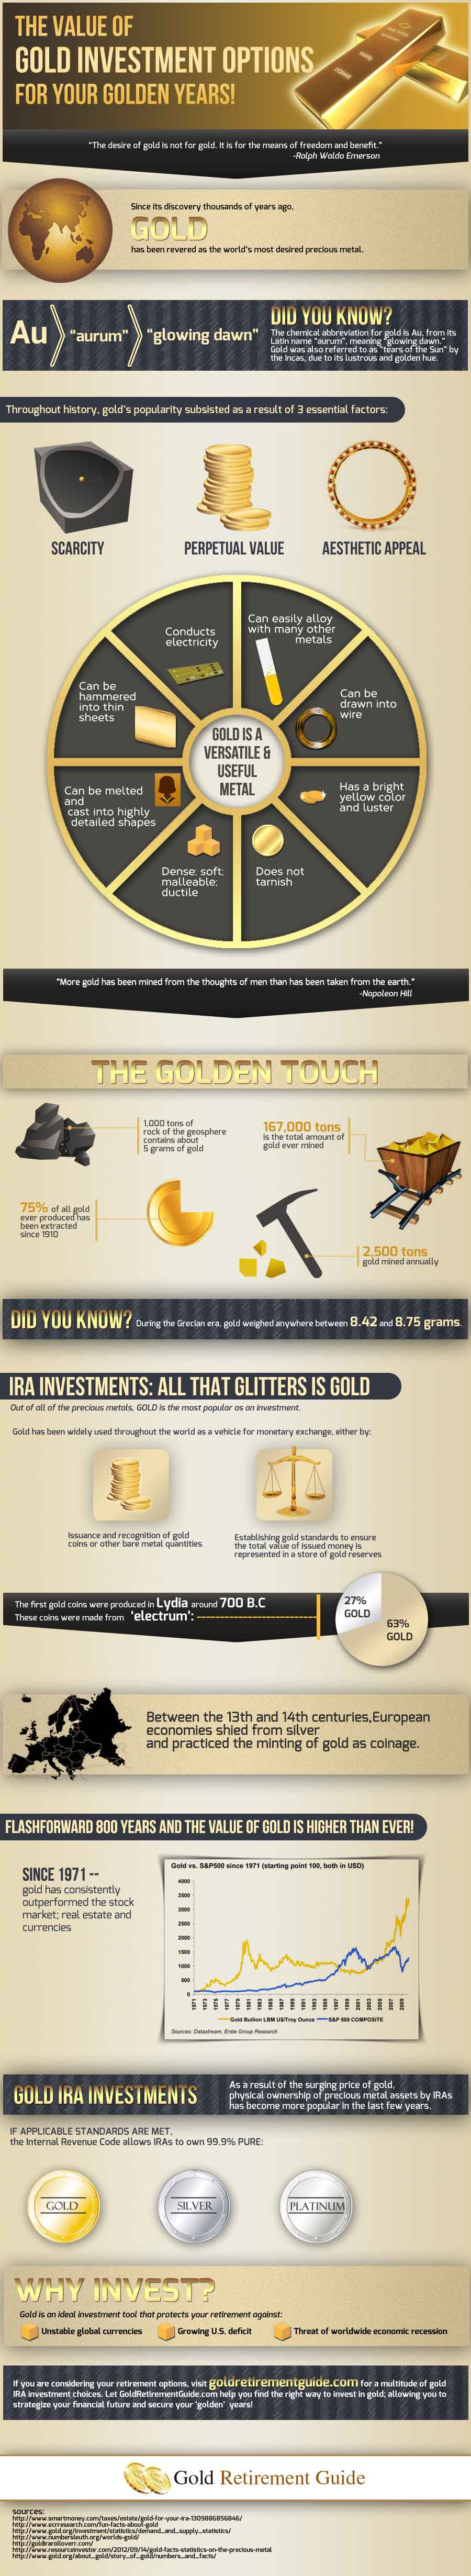 Gold investment options in usa